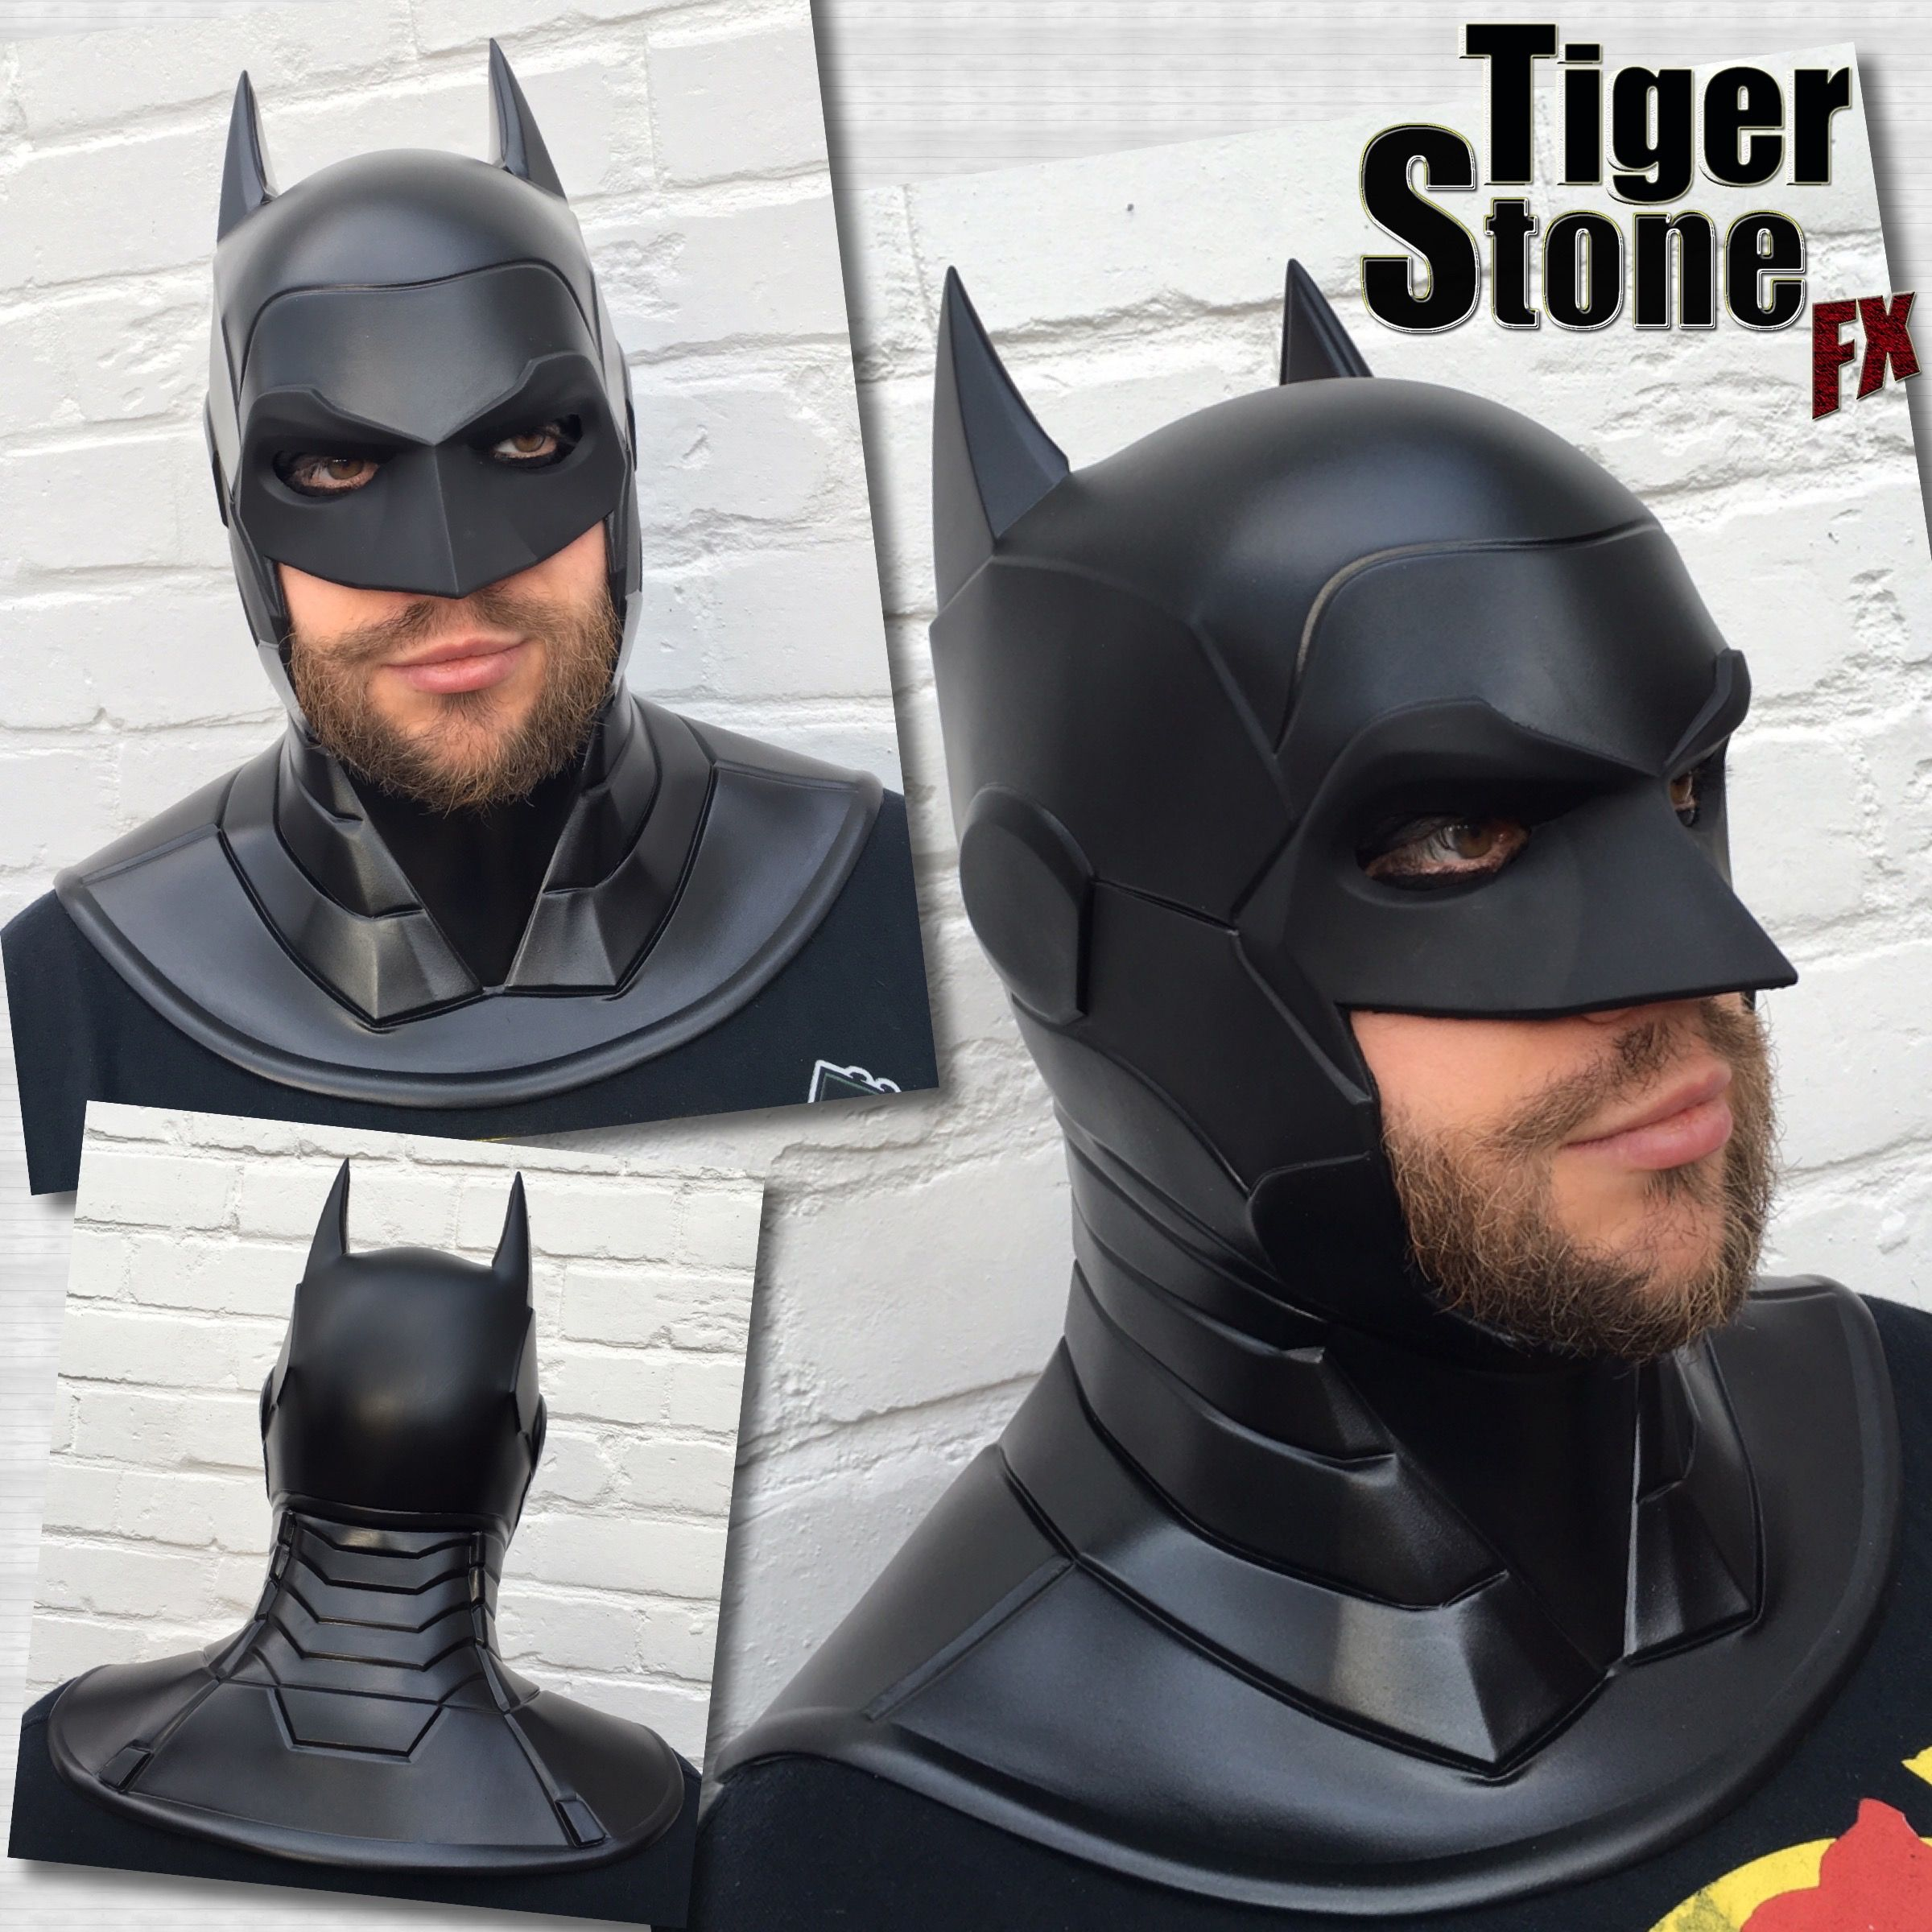 batman armored new 52 inspired cowl comes as 1 piece but